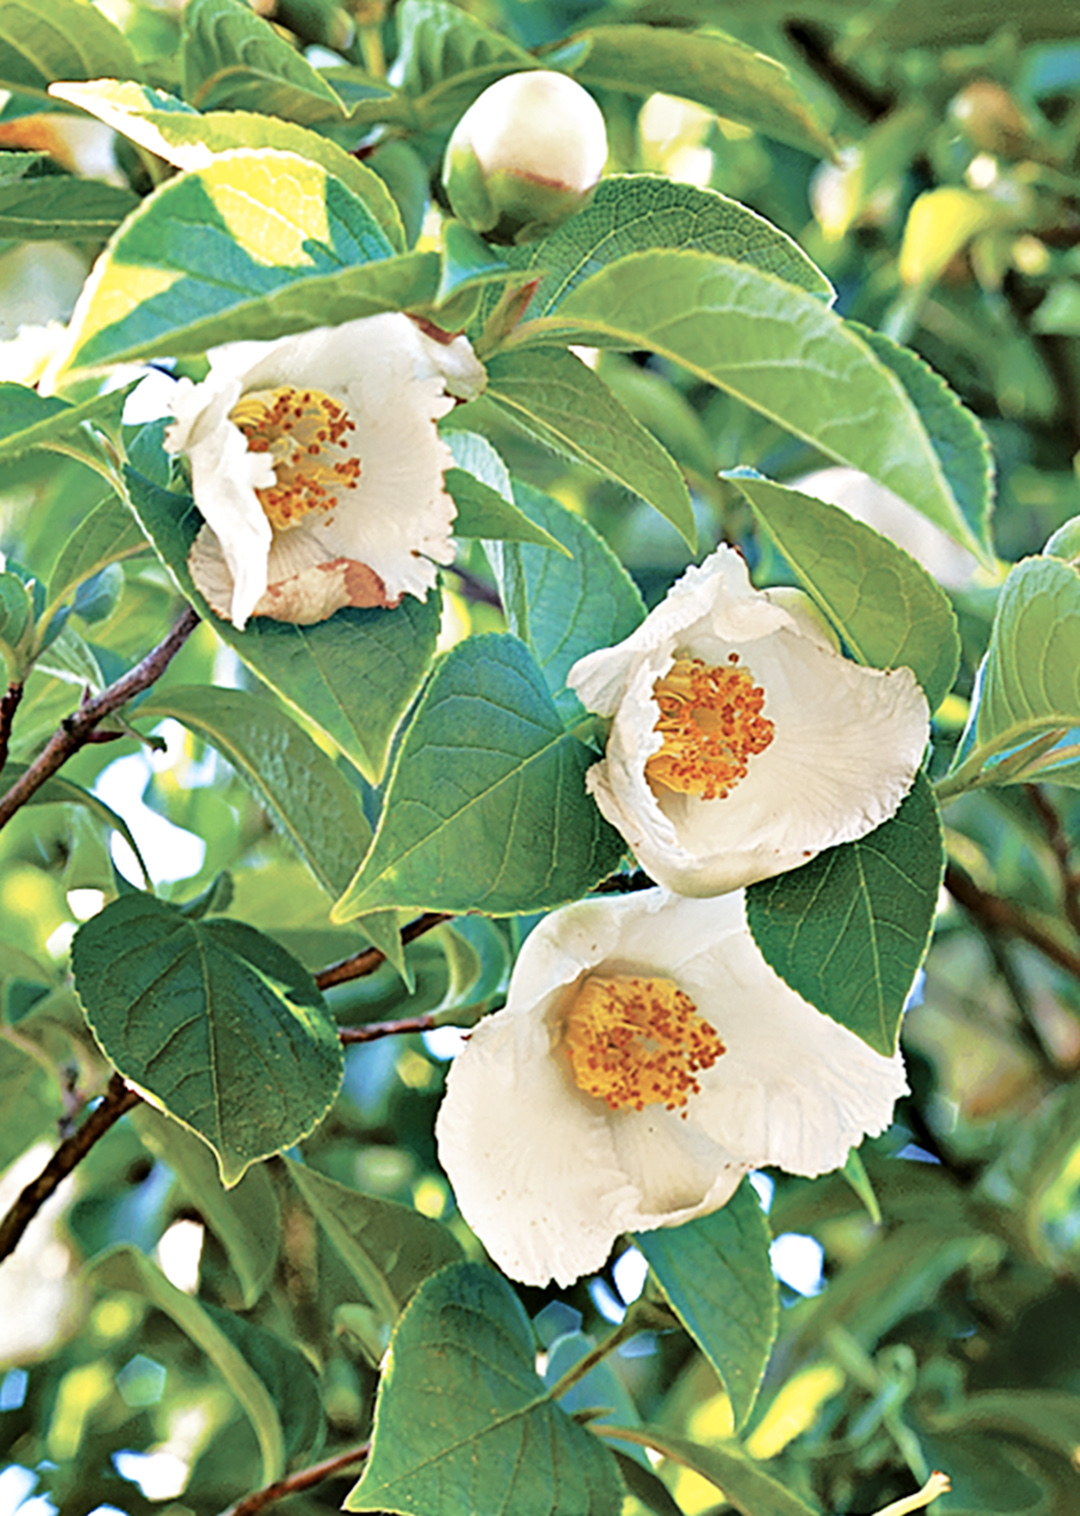 stewartia tree with blooms